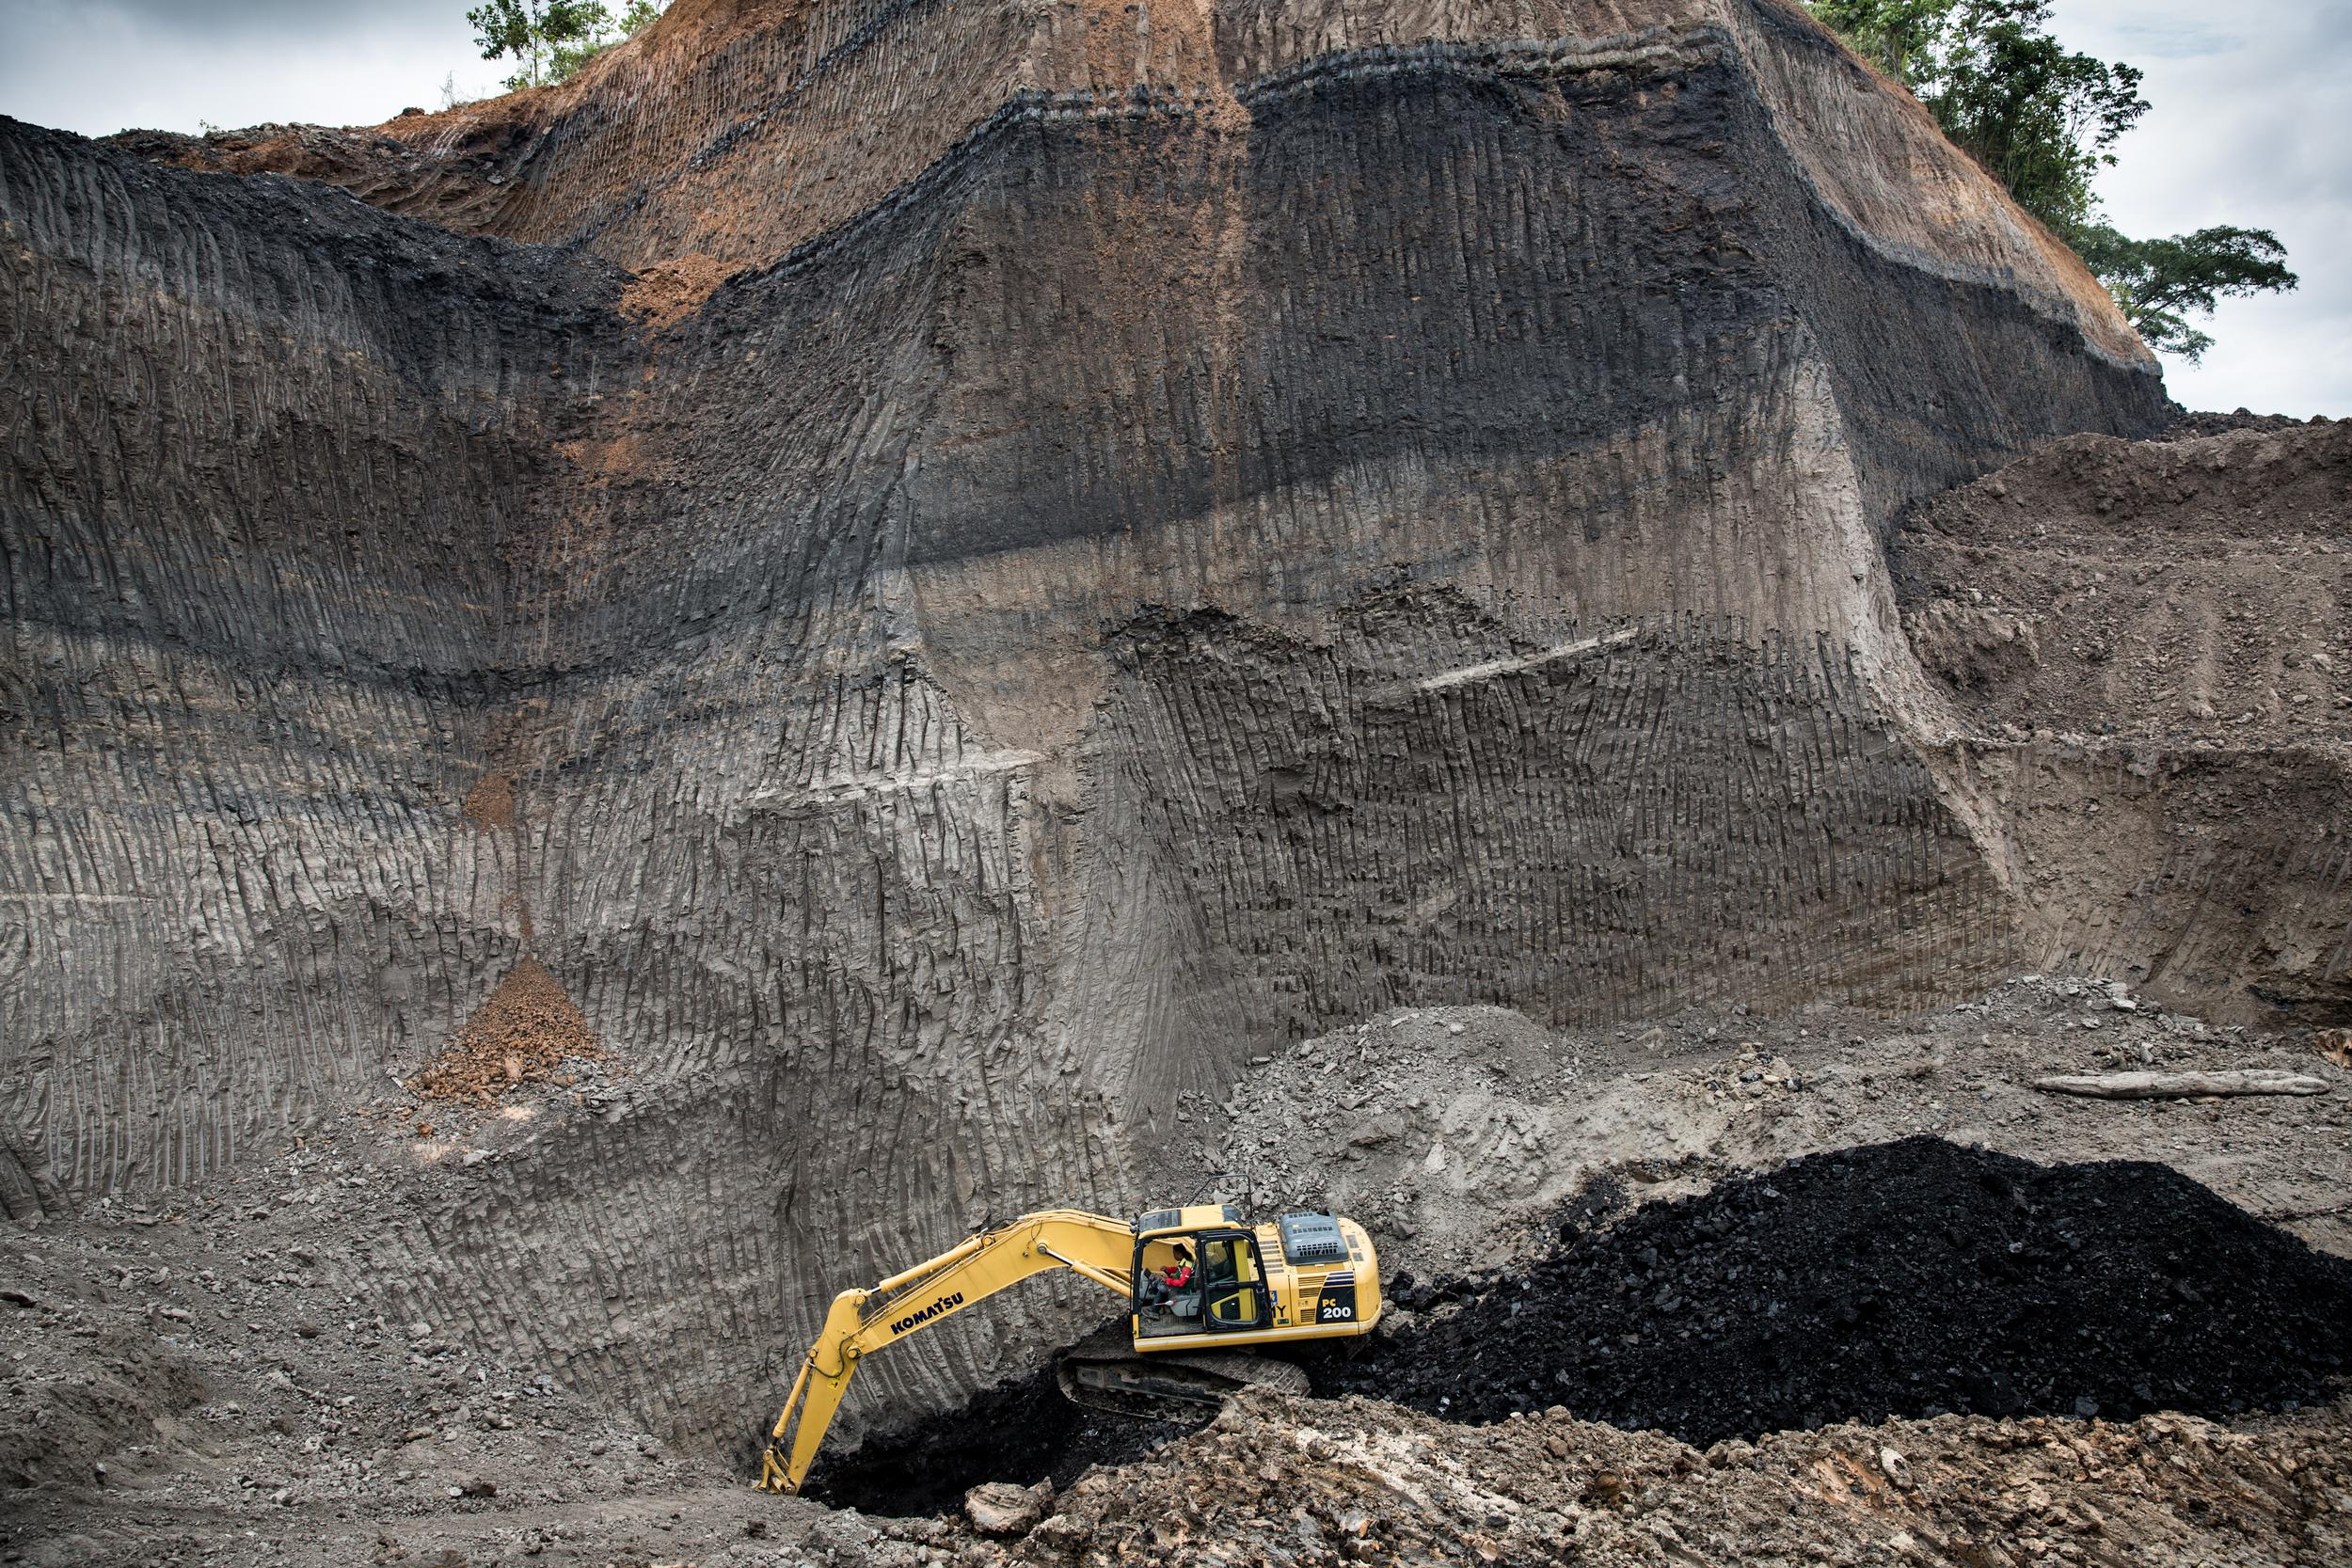 A digger in an open-pit Coal Mine in Kalimantan, Indonesia